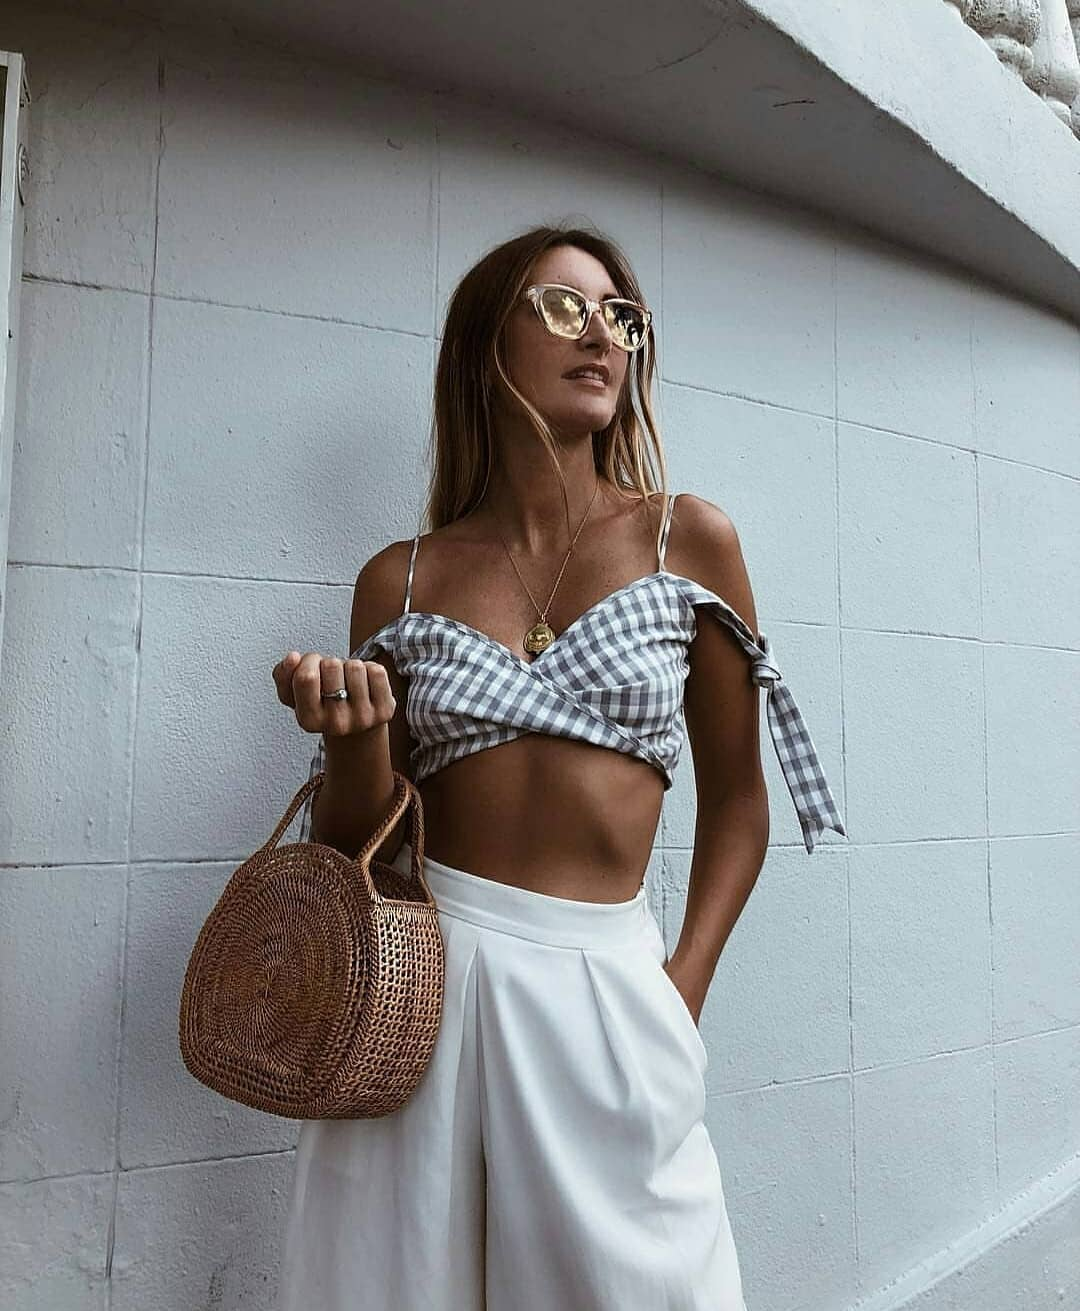 Crop Top In Gingham Print With Spaghetti Straps And White Culottes For Summer 2020